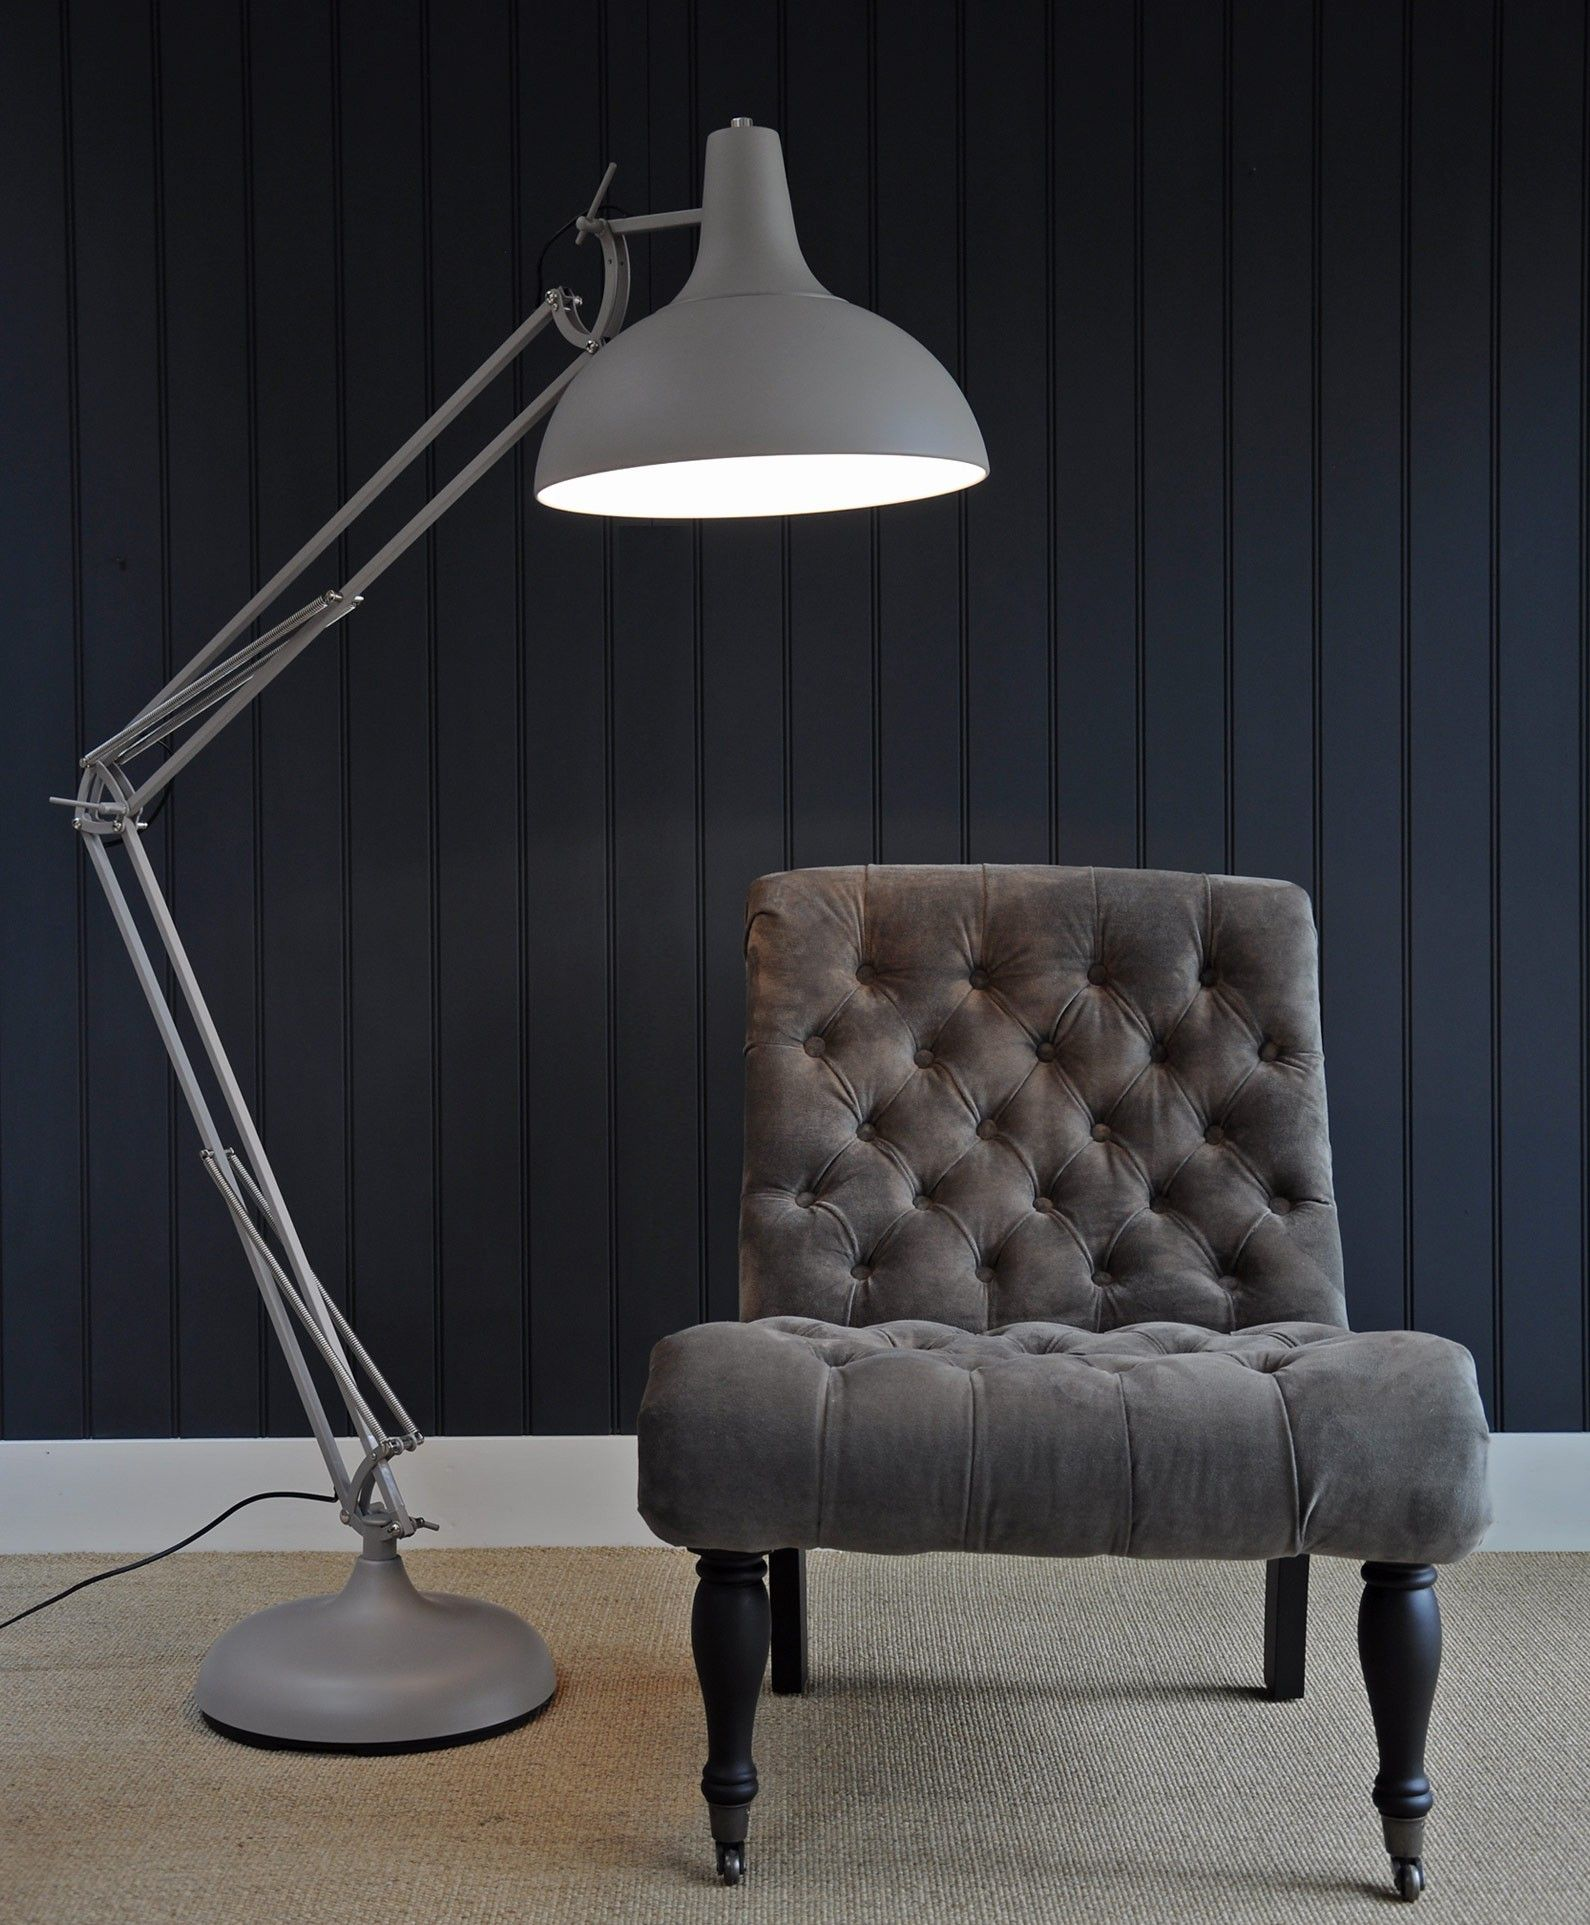 Attractive I Like This Over Sized Anglepoise Floor Lamp.